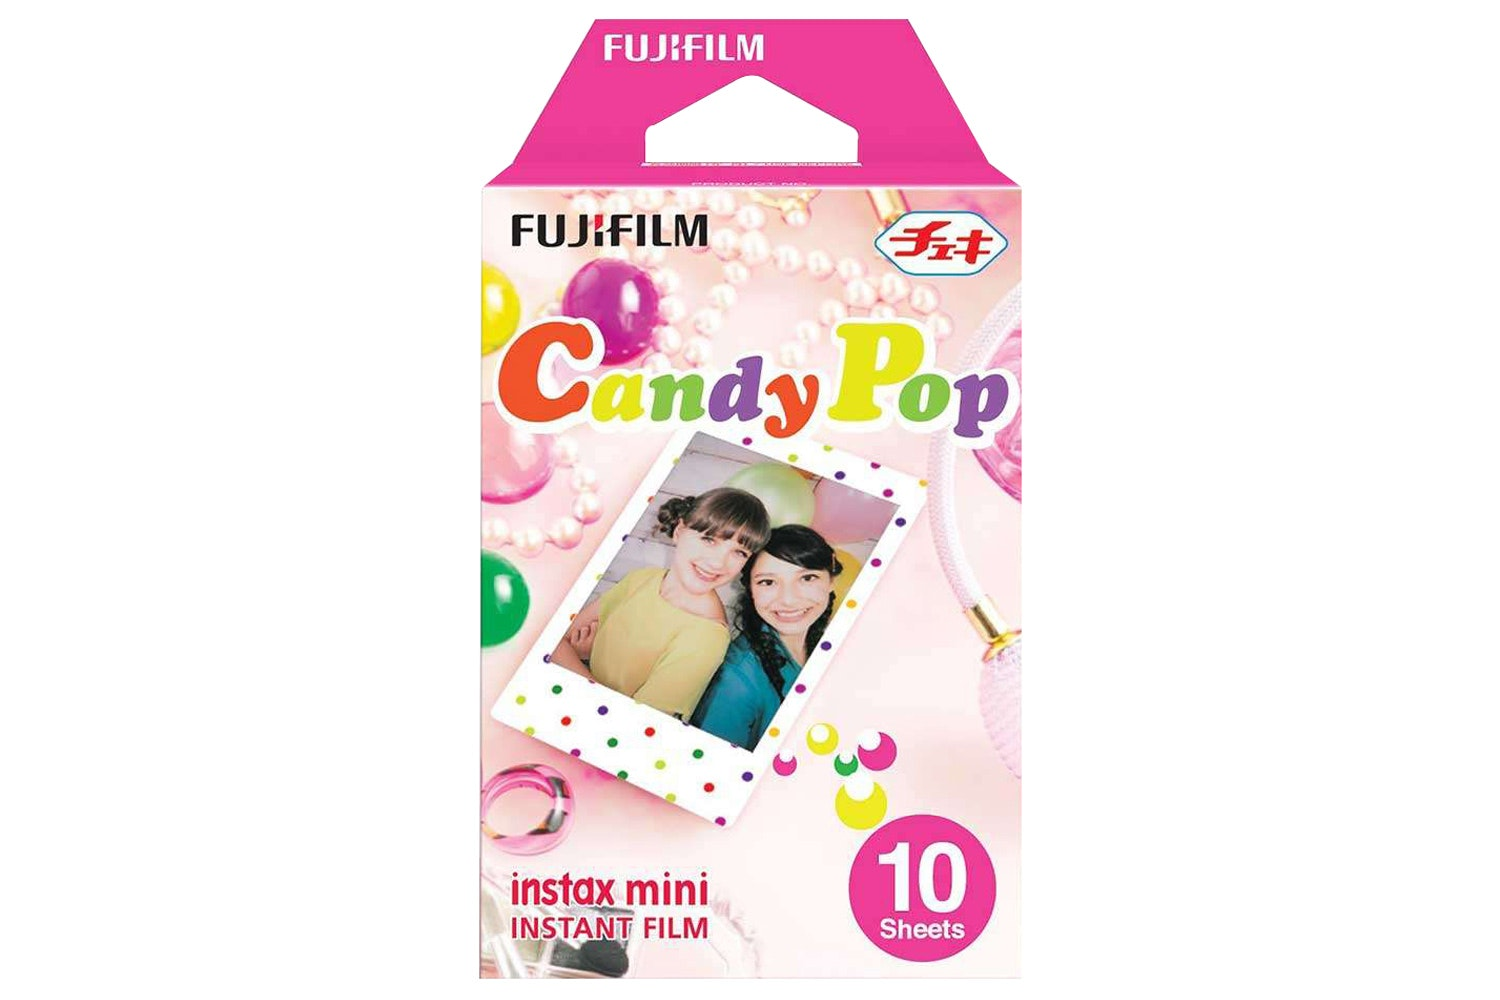 Fujifilm Instax Mini Film 10 Pack | Candy Pop